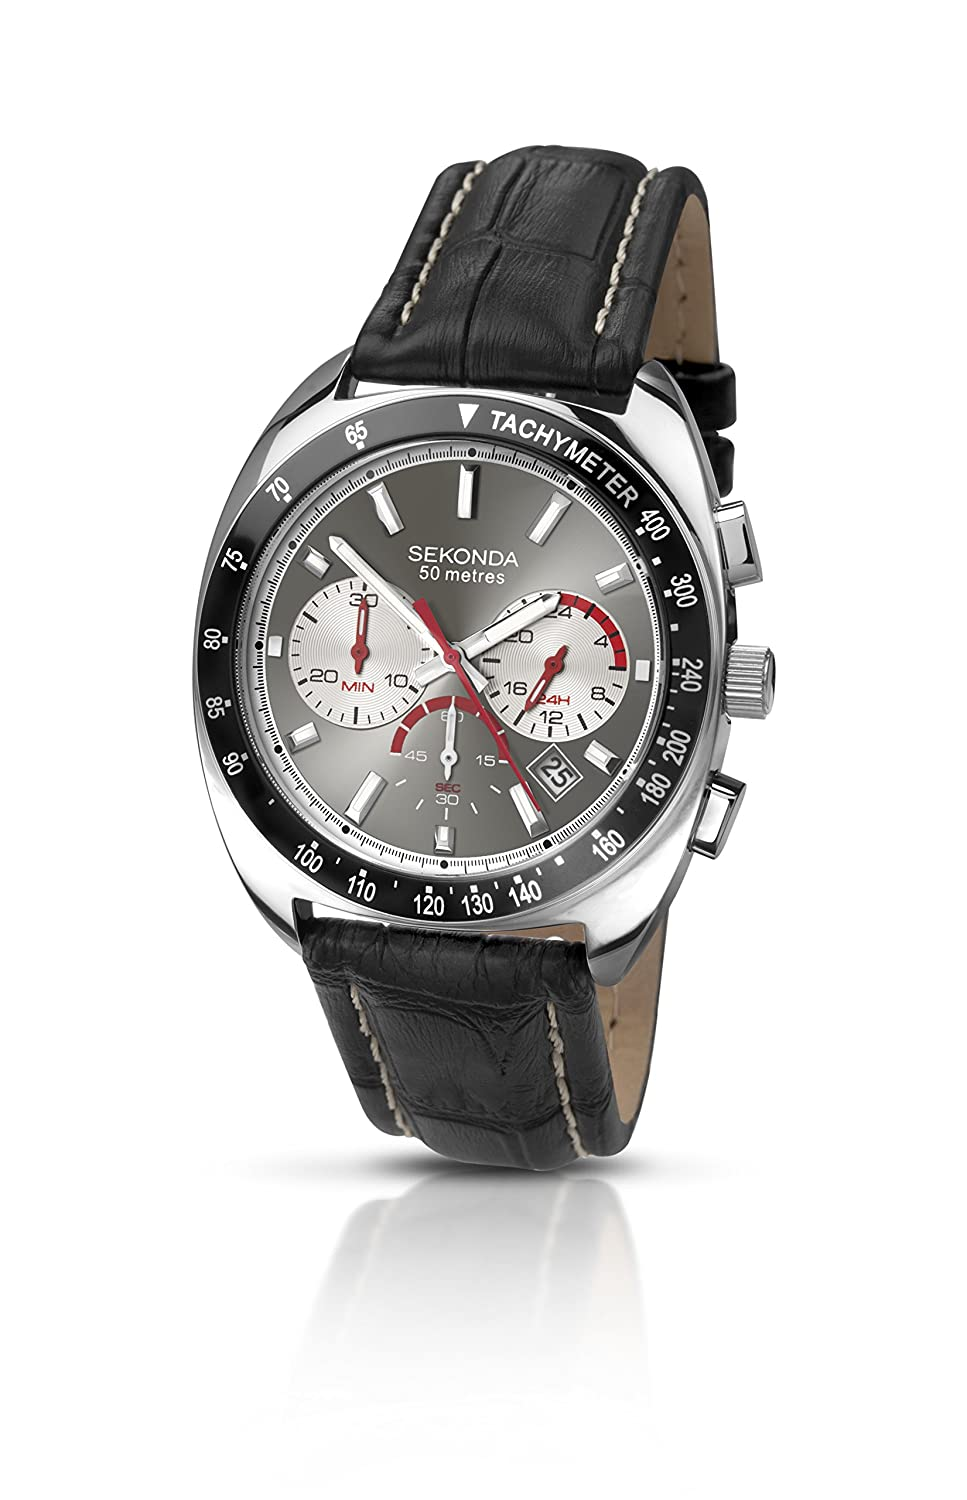 1000 images about sekonda watches on pinterest for Sekonda watches